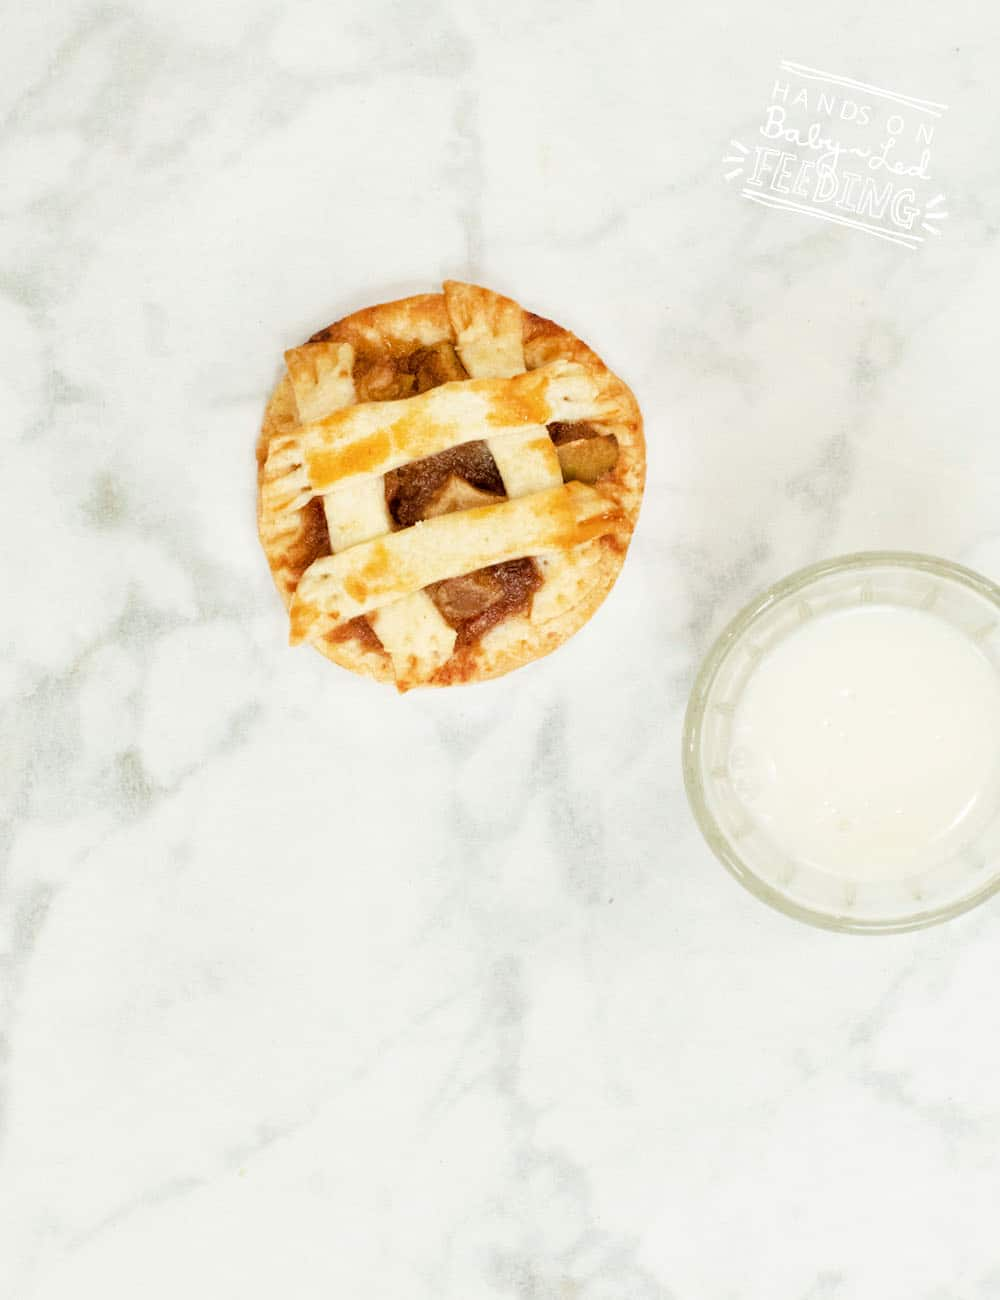 Fresh apple pie COOKIES! Homemade sweet apple filling with a light and crispy crust.The perfect finger food for baby and toddler hands. Refined sugar free treat that is perfect for baby led weaning snack! #babyledweaning #cookies #applepie #refinedsugarfree